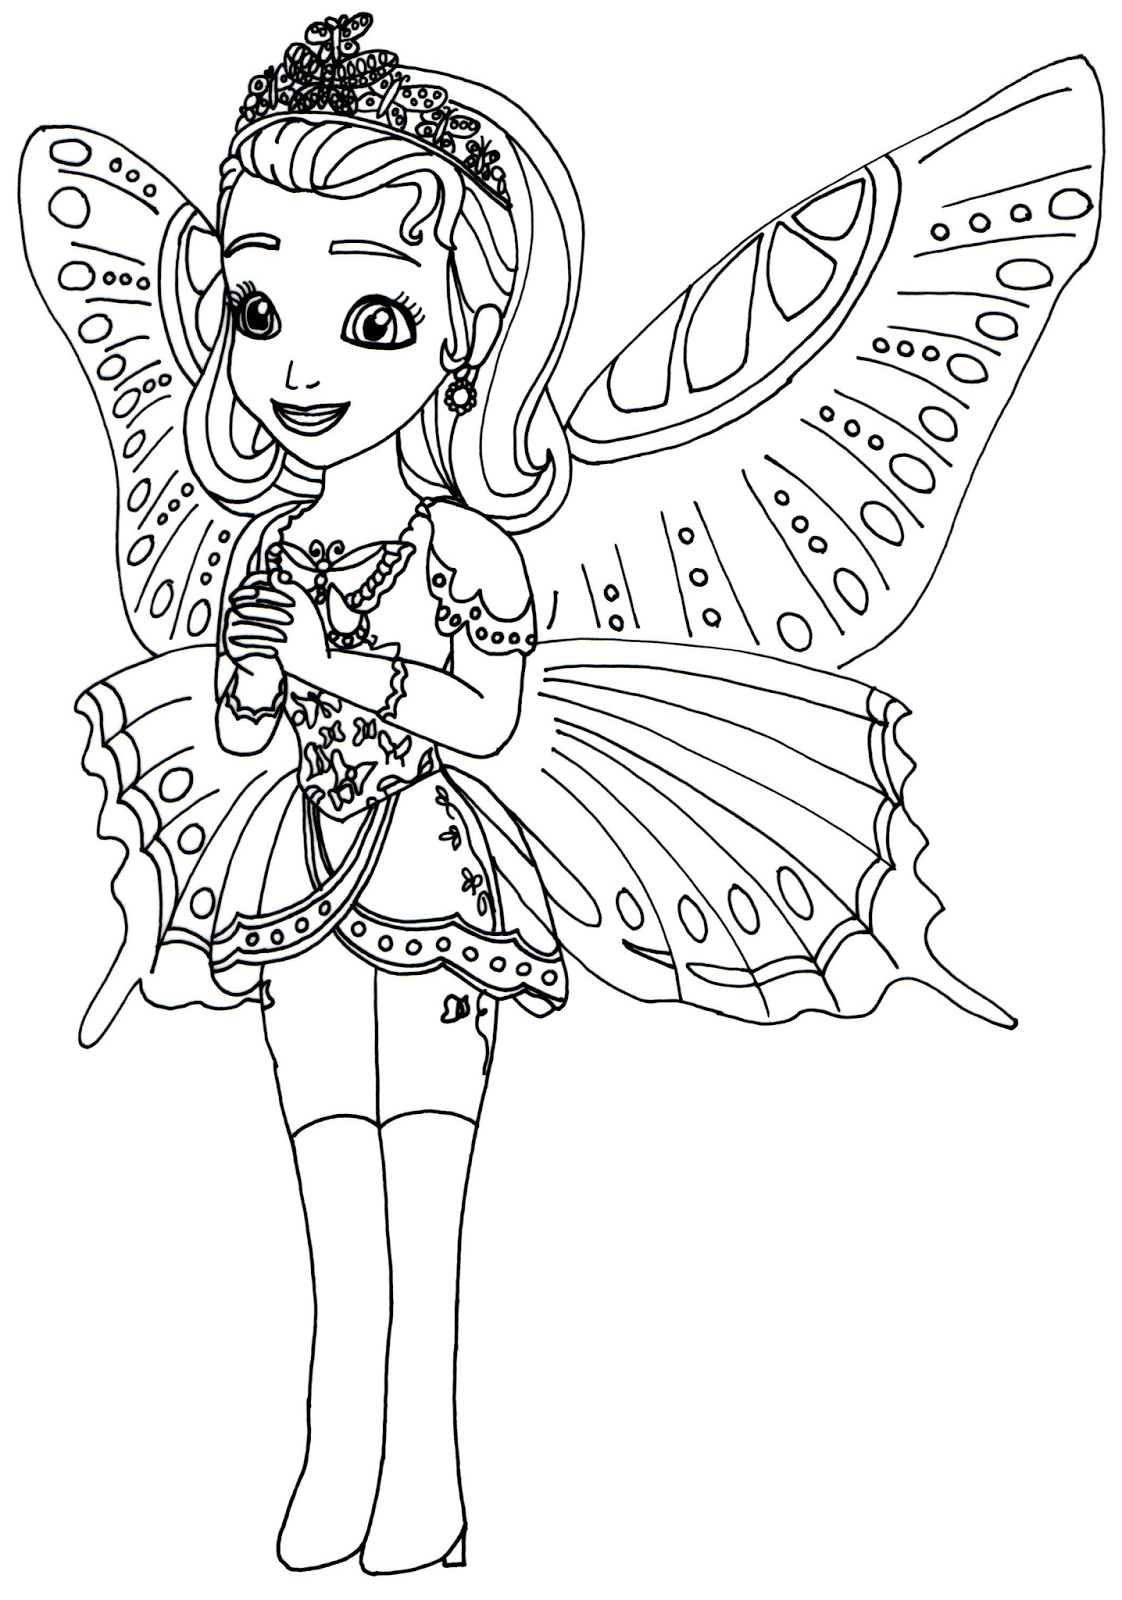 Sofia The First Coloring Pages March 2014 Princess Sofia Sheets Printable